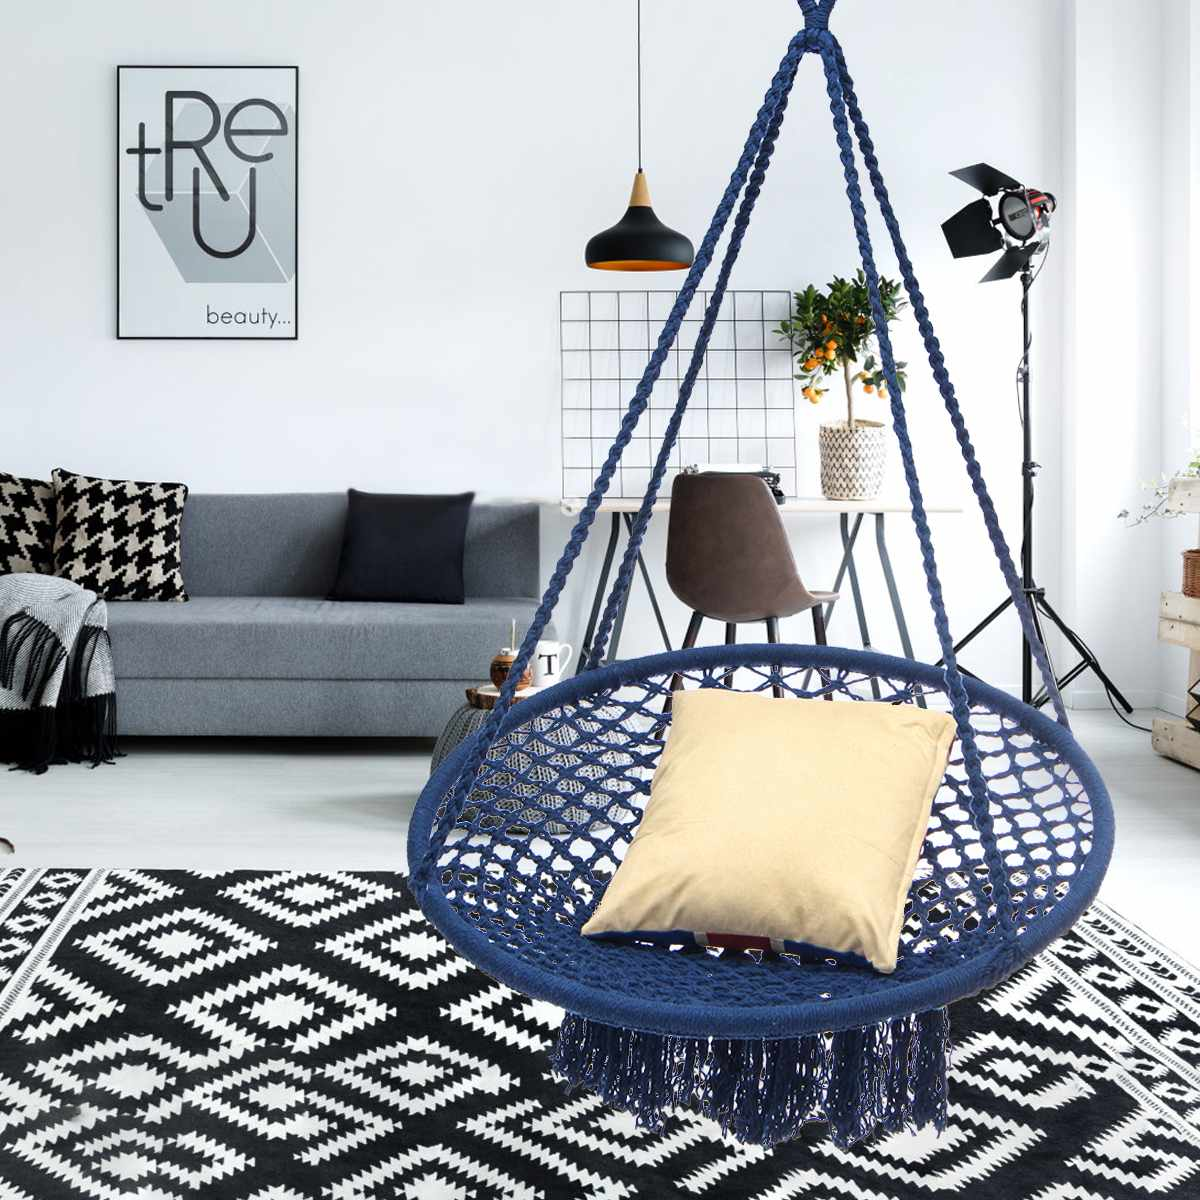 Indoor Swing Furniture Oversized Porch Round Hammock Furniture Outdoor Indoor Swing Chair Hanging For Dormitory Bedroom Blue Hammock Chair For Children Adult Pinterest Round Hammock Furniture Outdoor Indoor Swing Chair Hanging For